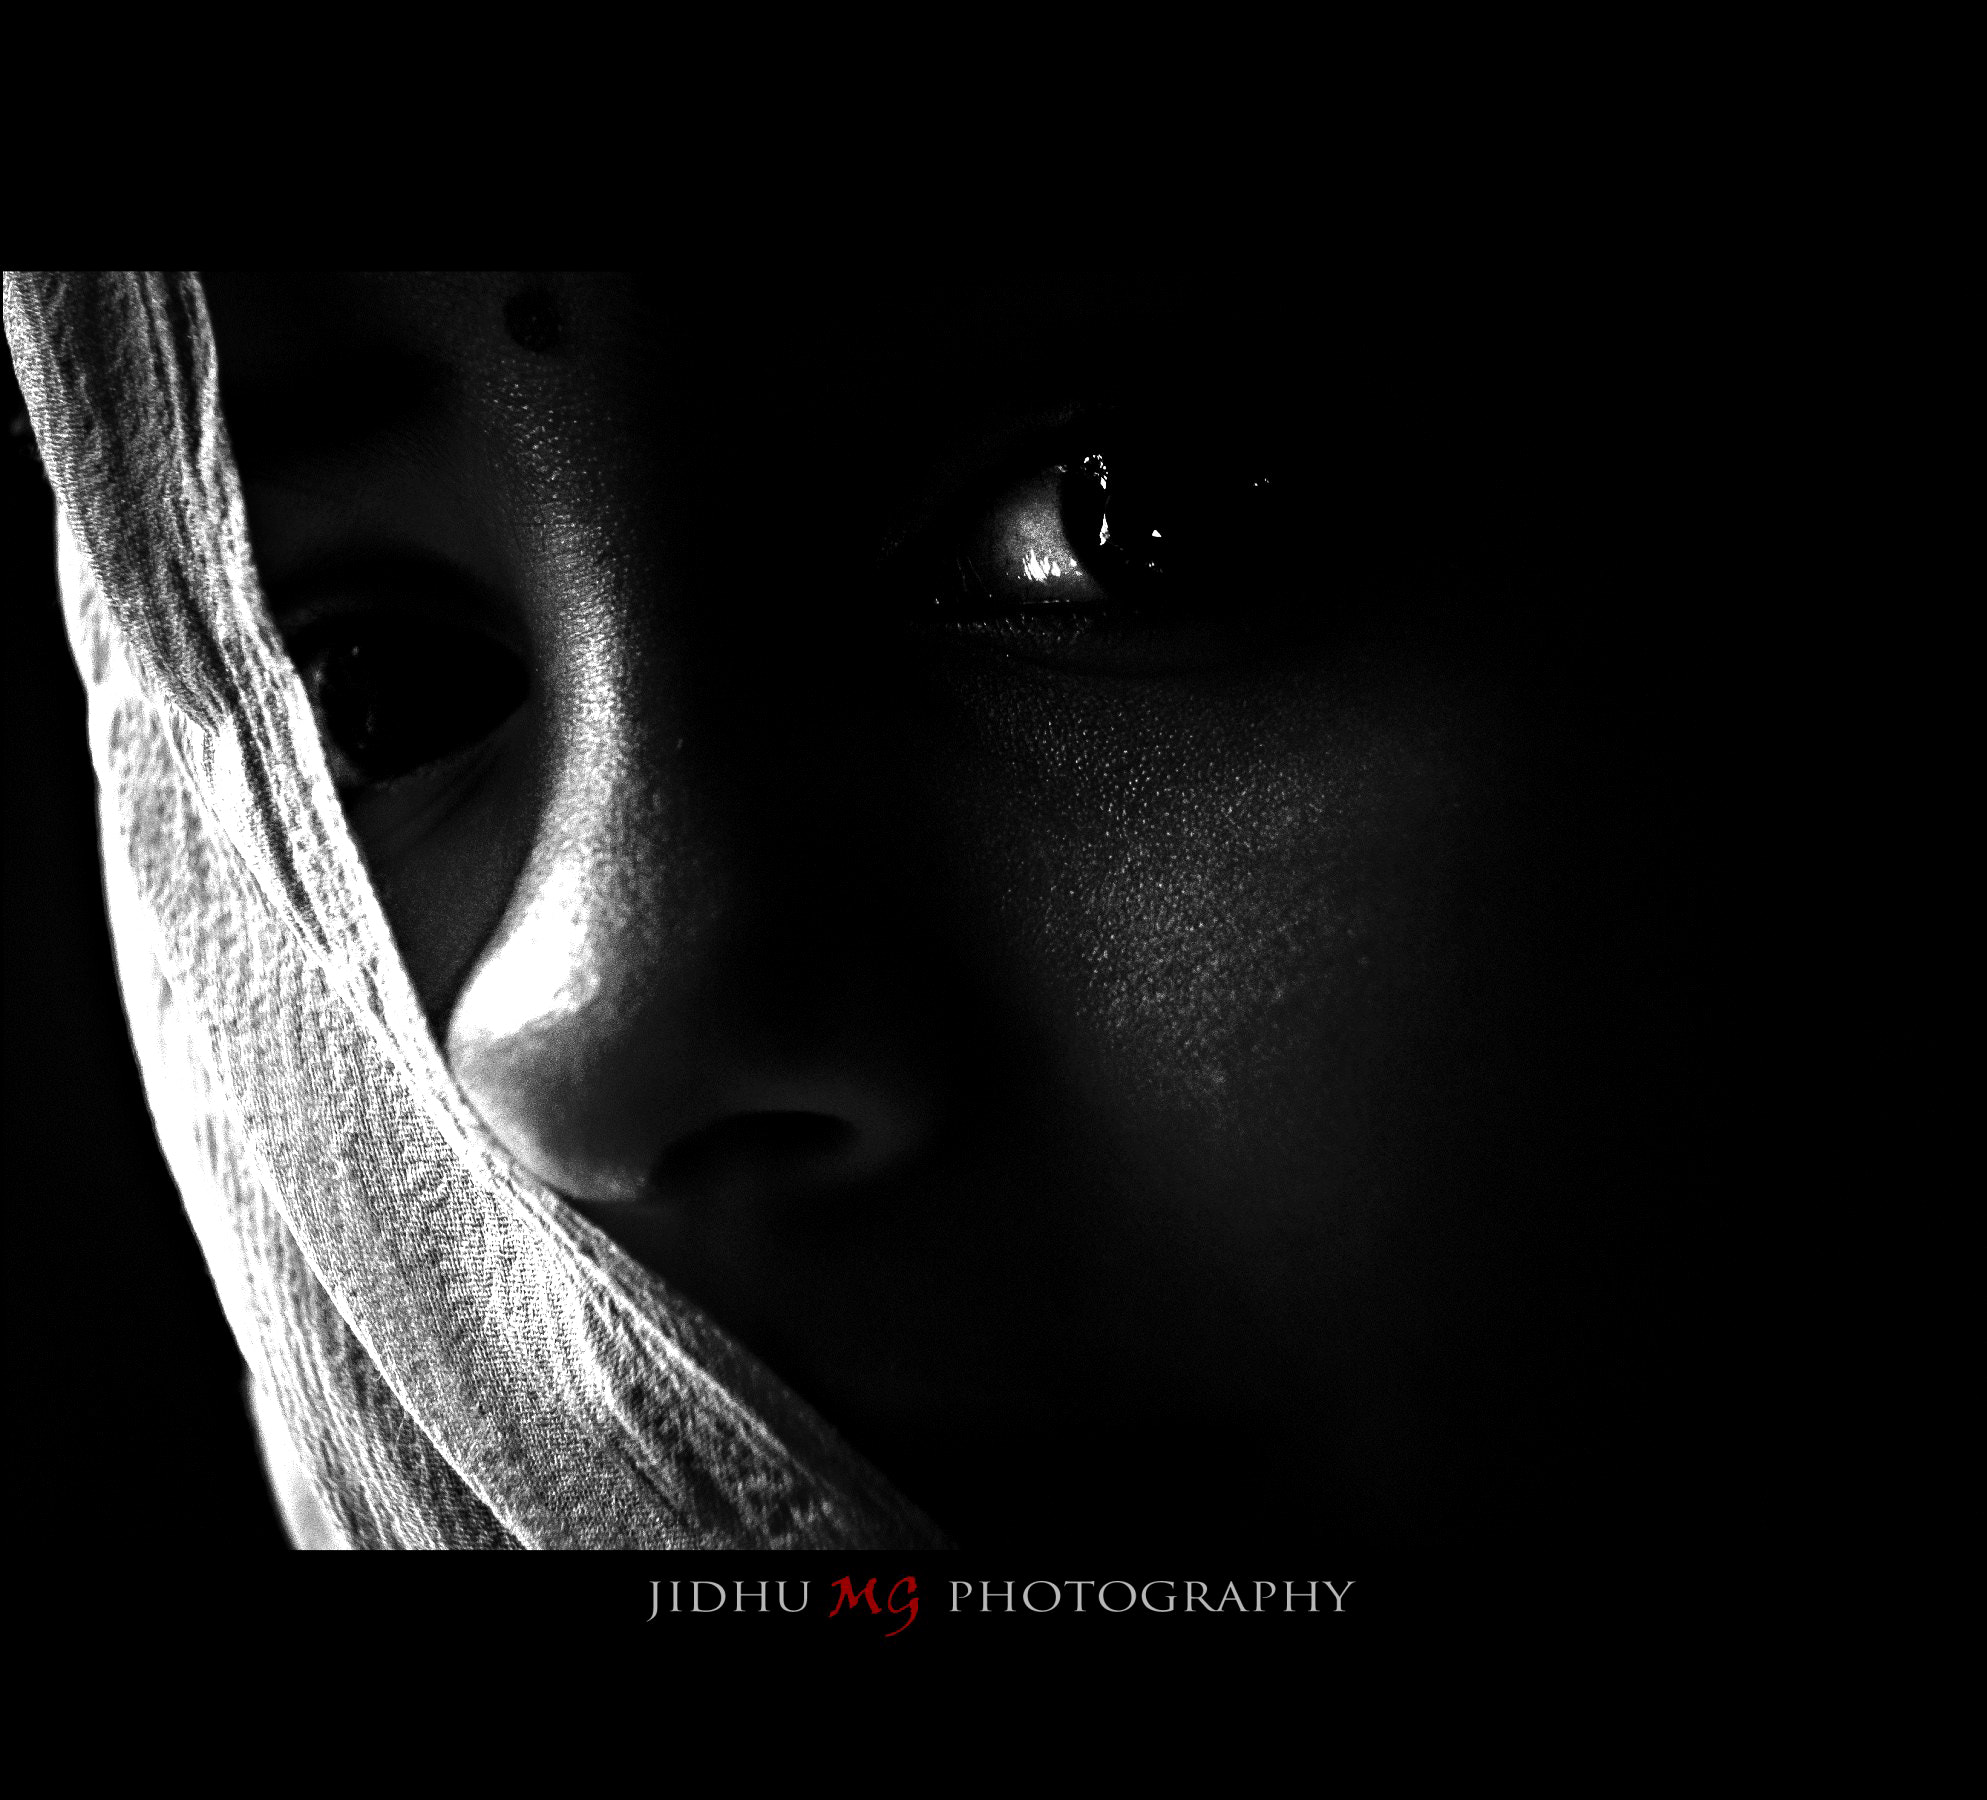 Photograph in dark by jidhu mg on 500px